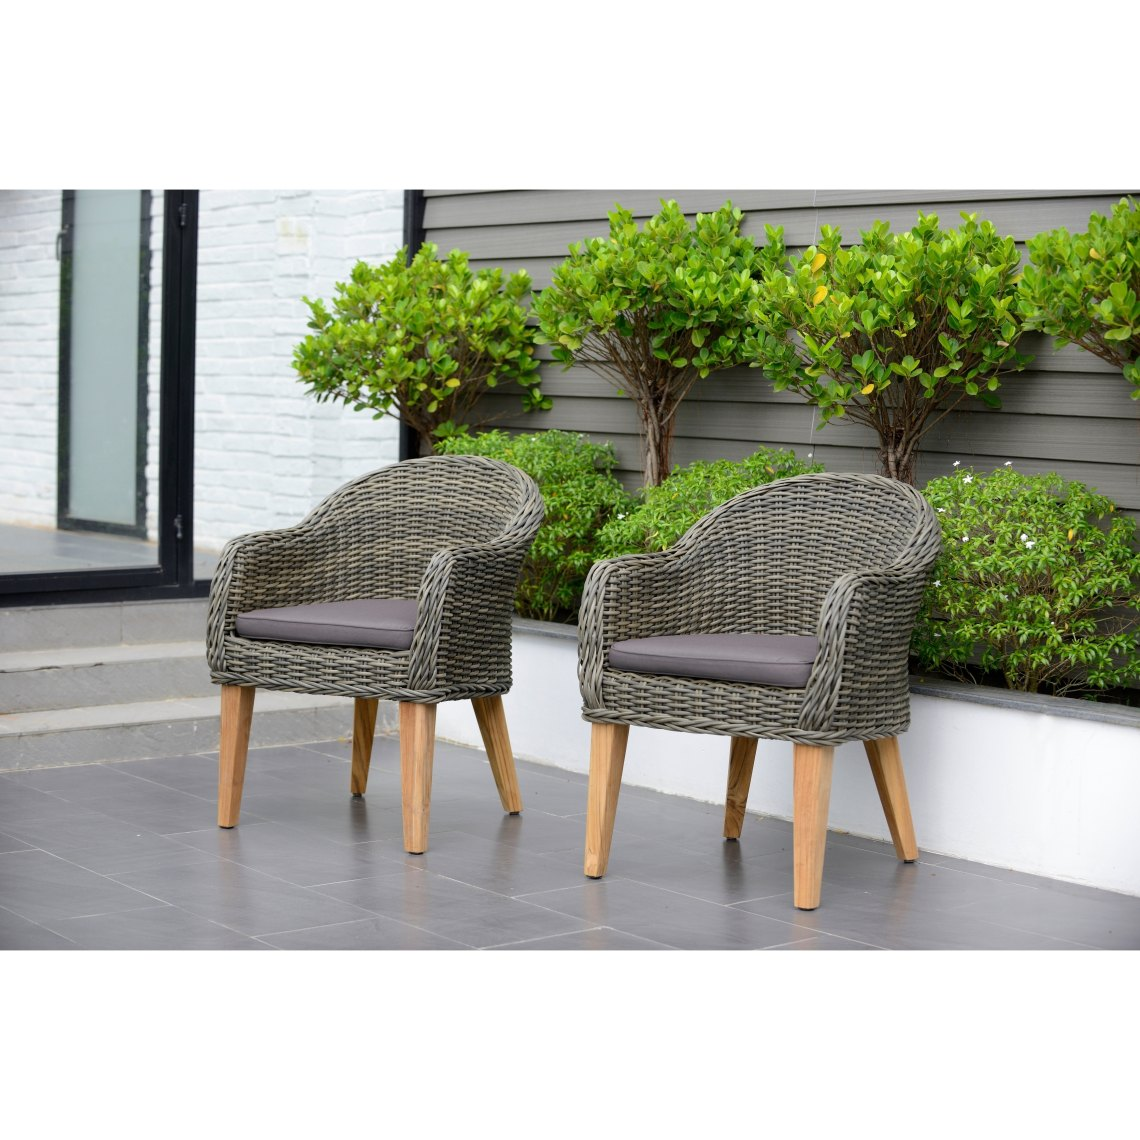 Amazonia Teak Sumay Wicker Teak Patio Armchair Set With Brown Cushions Set Of